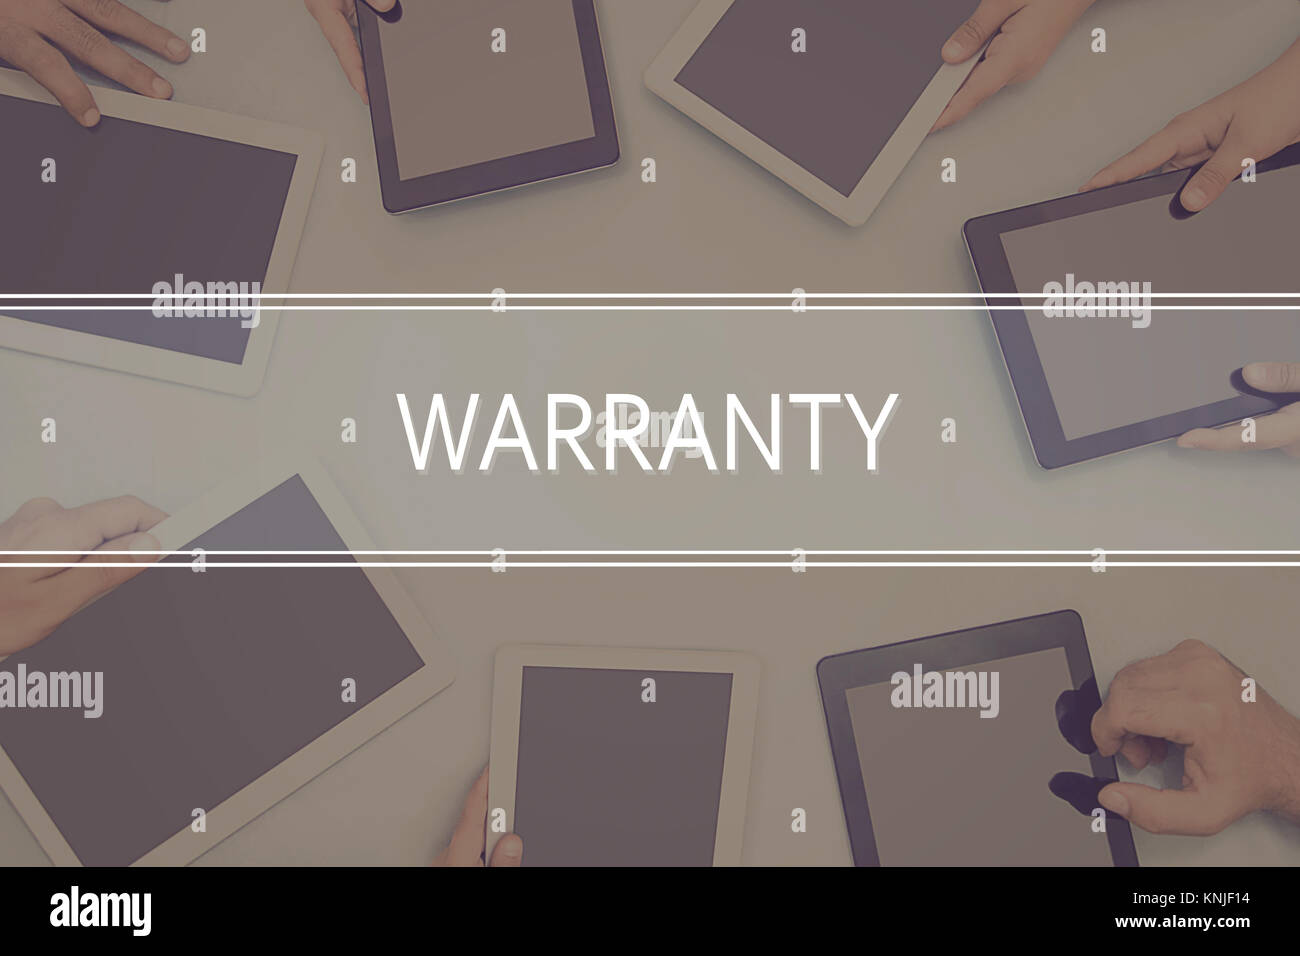 WARRANTY CONCEPT Business Concept. - Stock Image